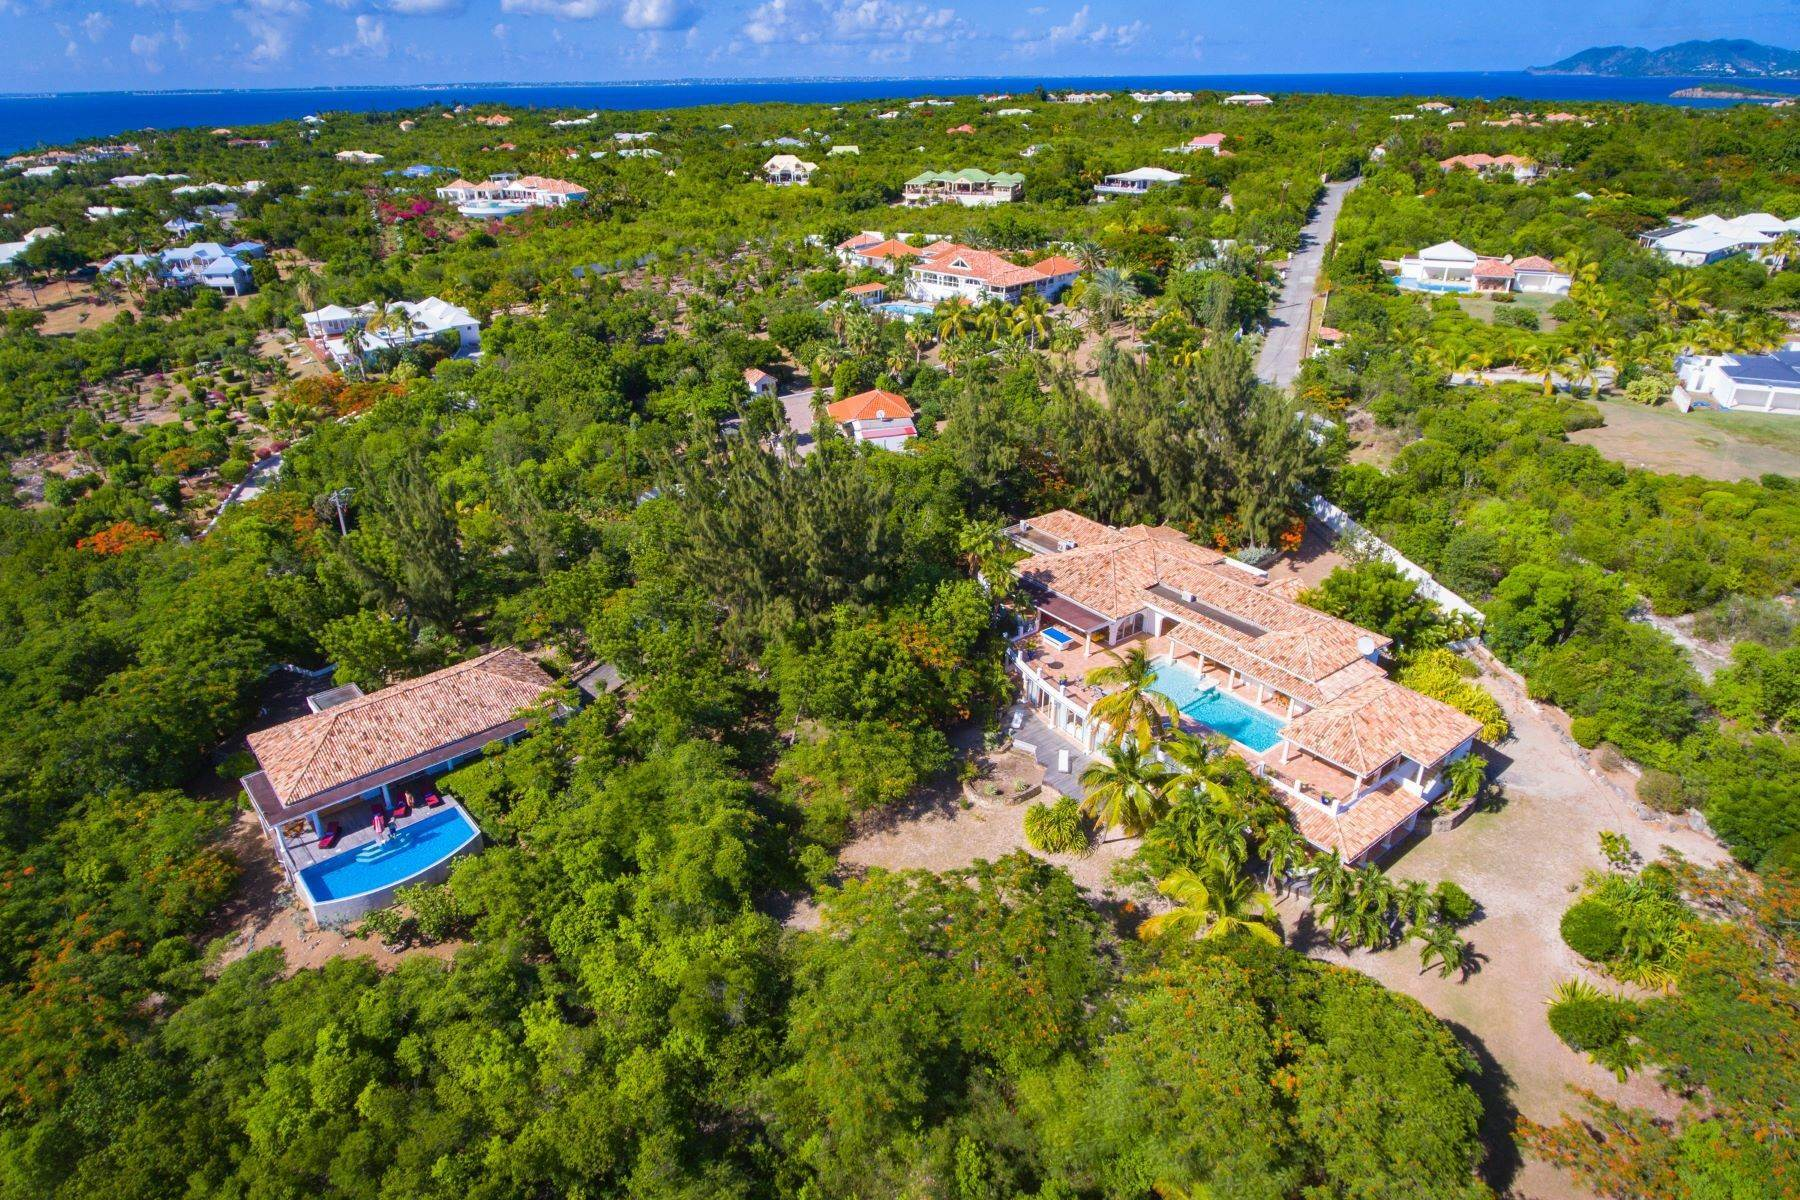 Single Family Homes for Sale at La Provençale Terres Basses, 97150, St. Martin